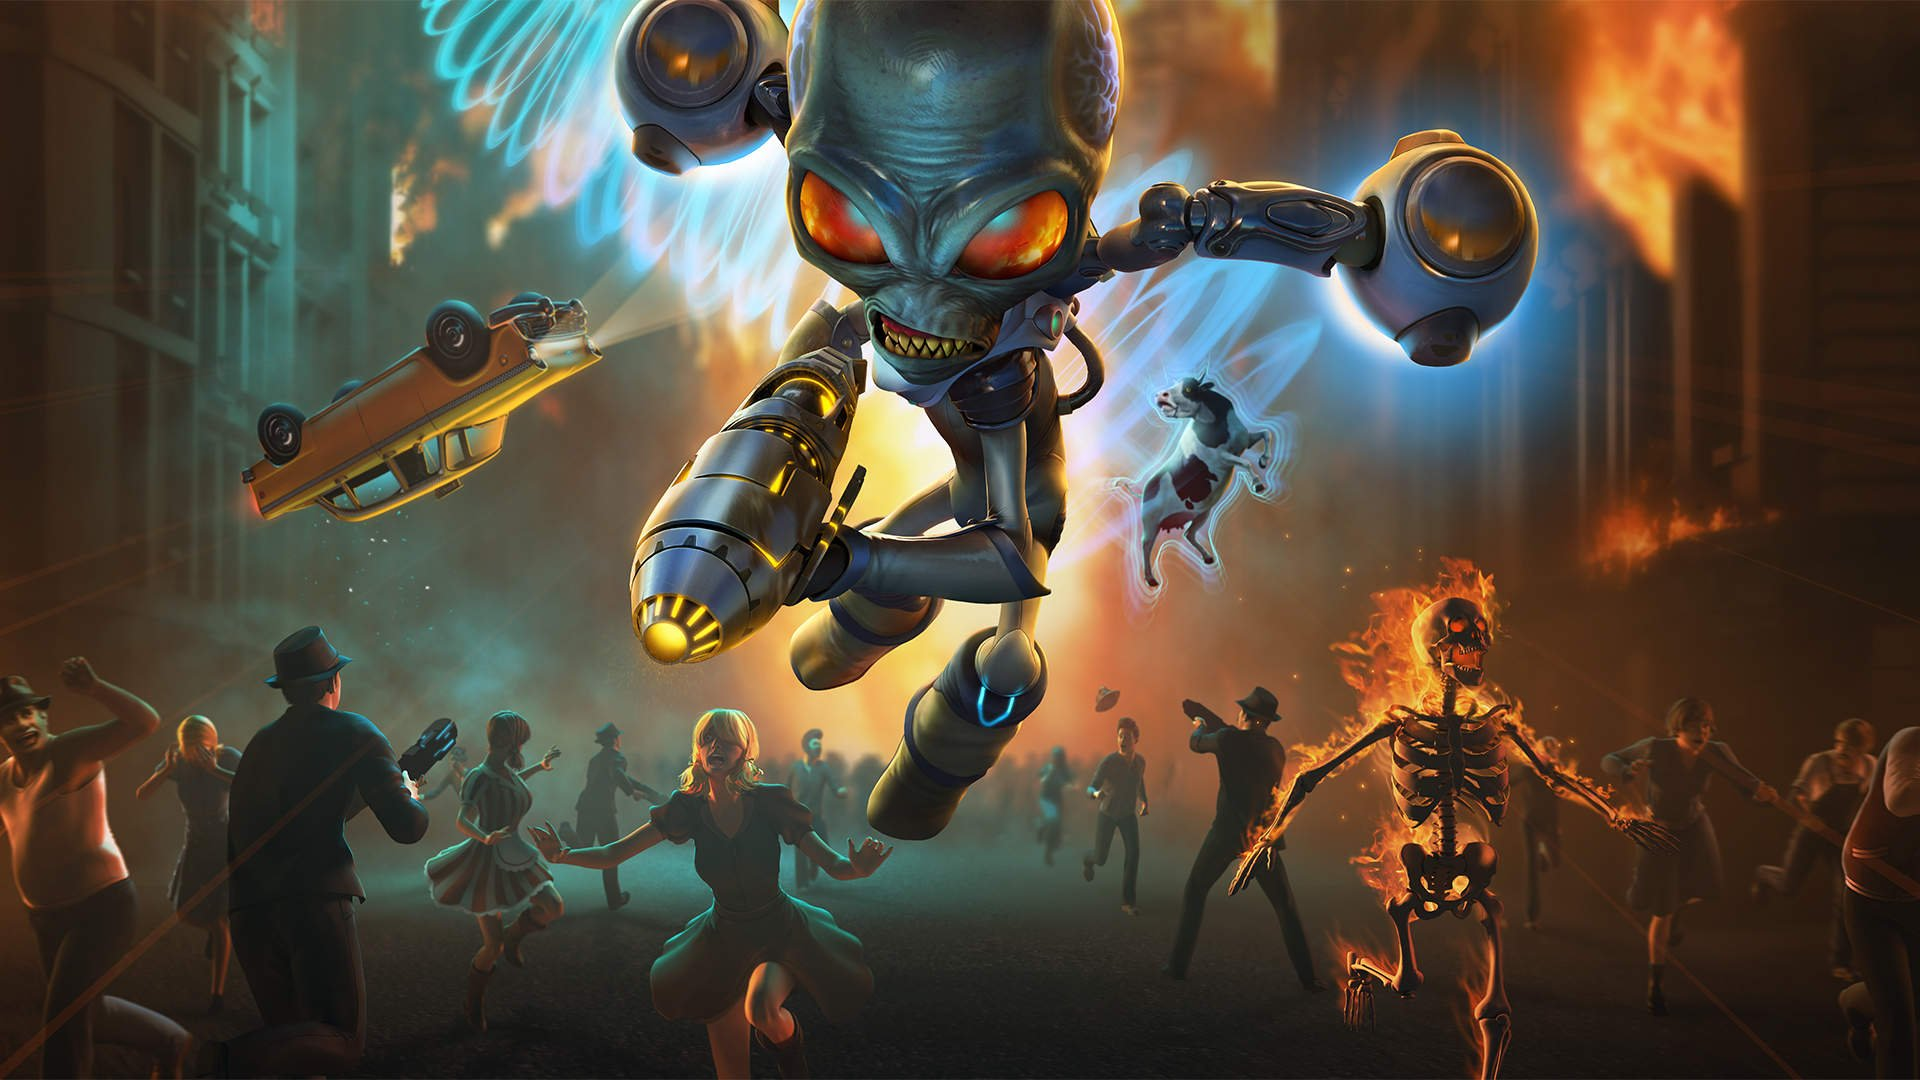 THQ Nordic is bringing several cool games to PAX East 2020, including the Destroy All Humans remake.